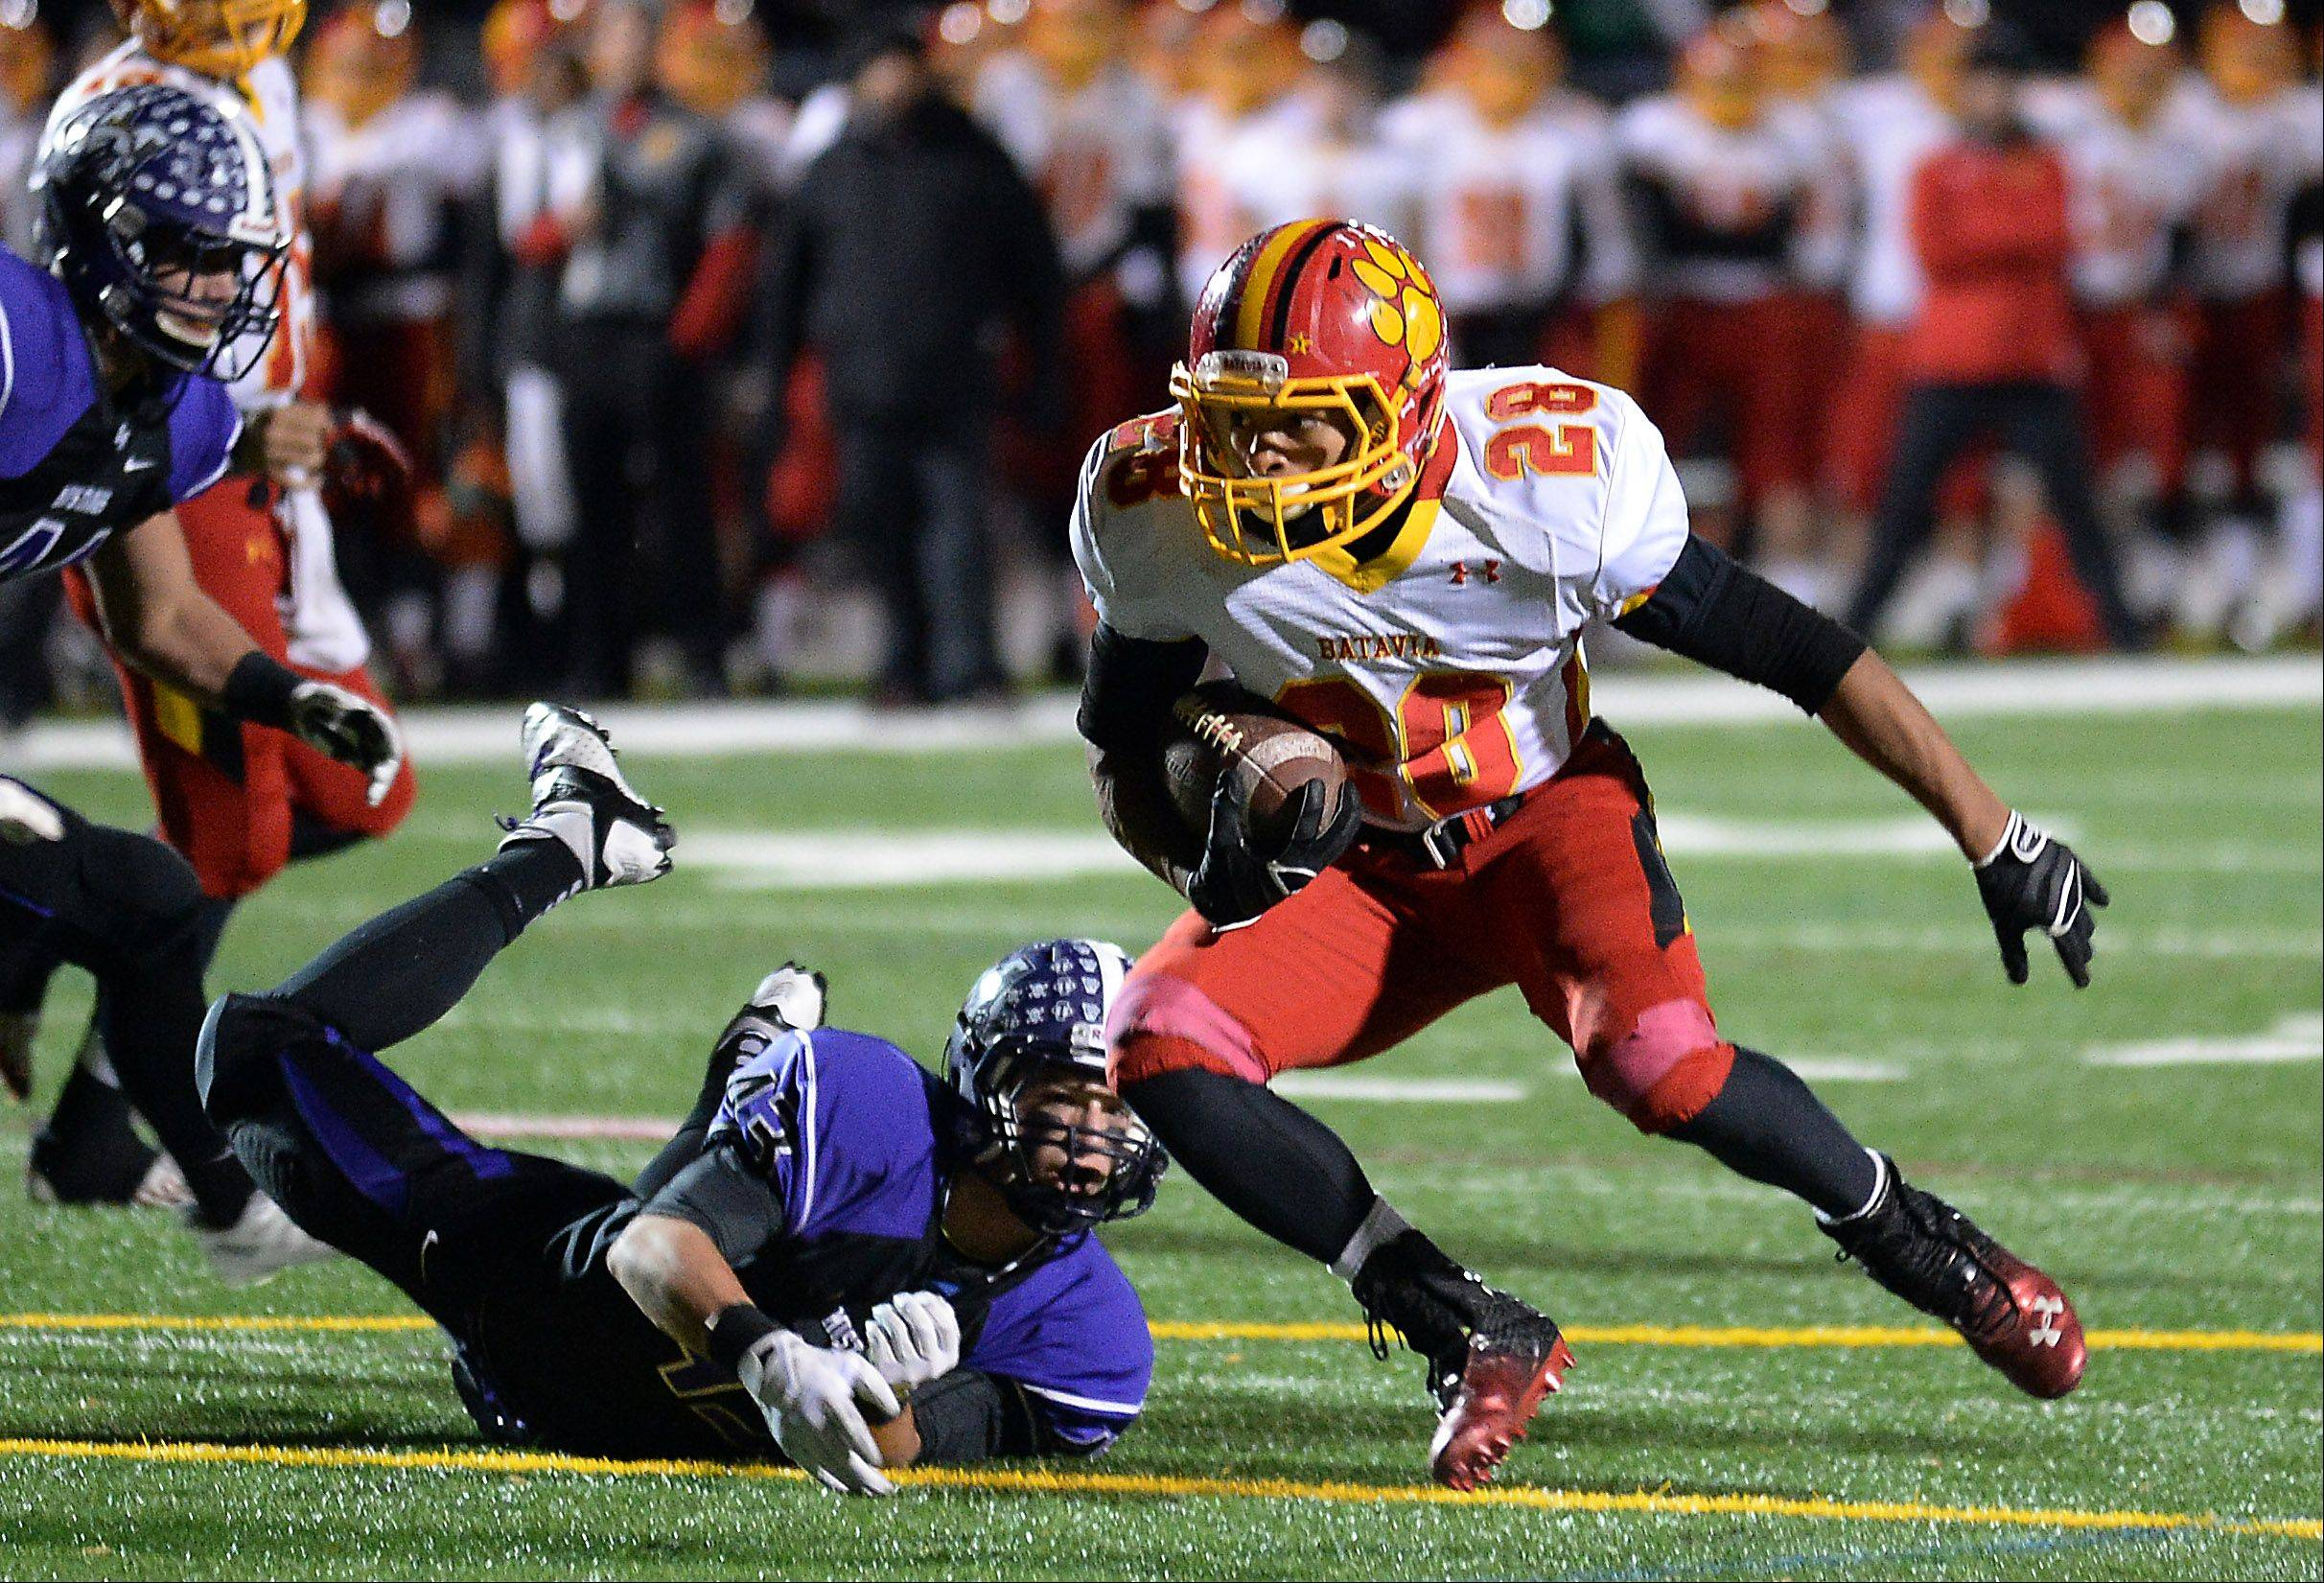 Batavia's Anthony Scaccia runs past Rolling Meadows' Peyton Dezonna in the third quarter for a touchdown.